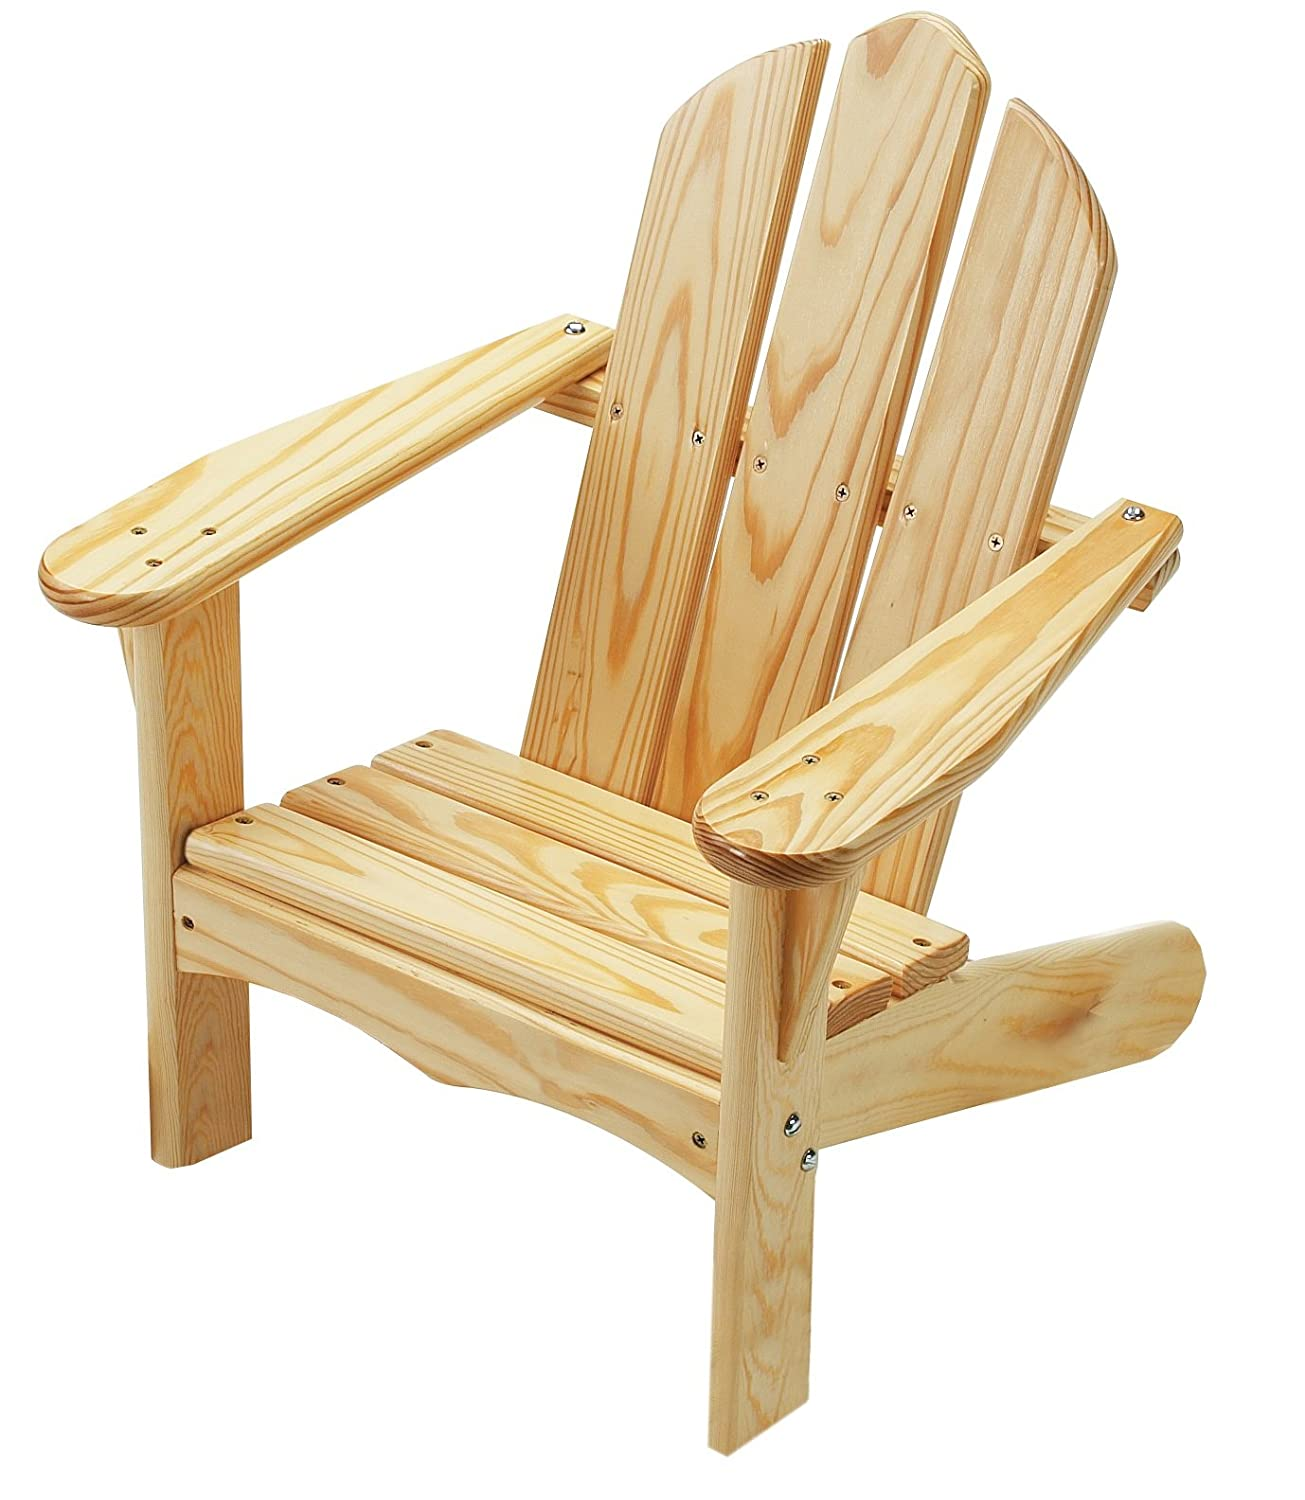 Very best Amazon.com: Little Colorado Child's Adirondack Chair- Unfinished  YW68